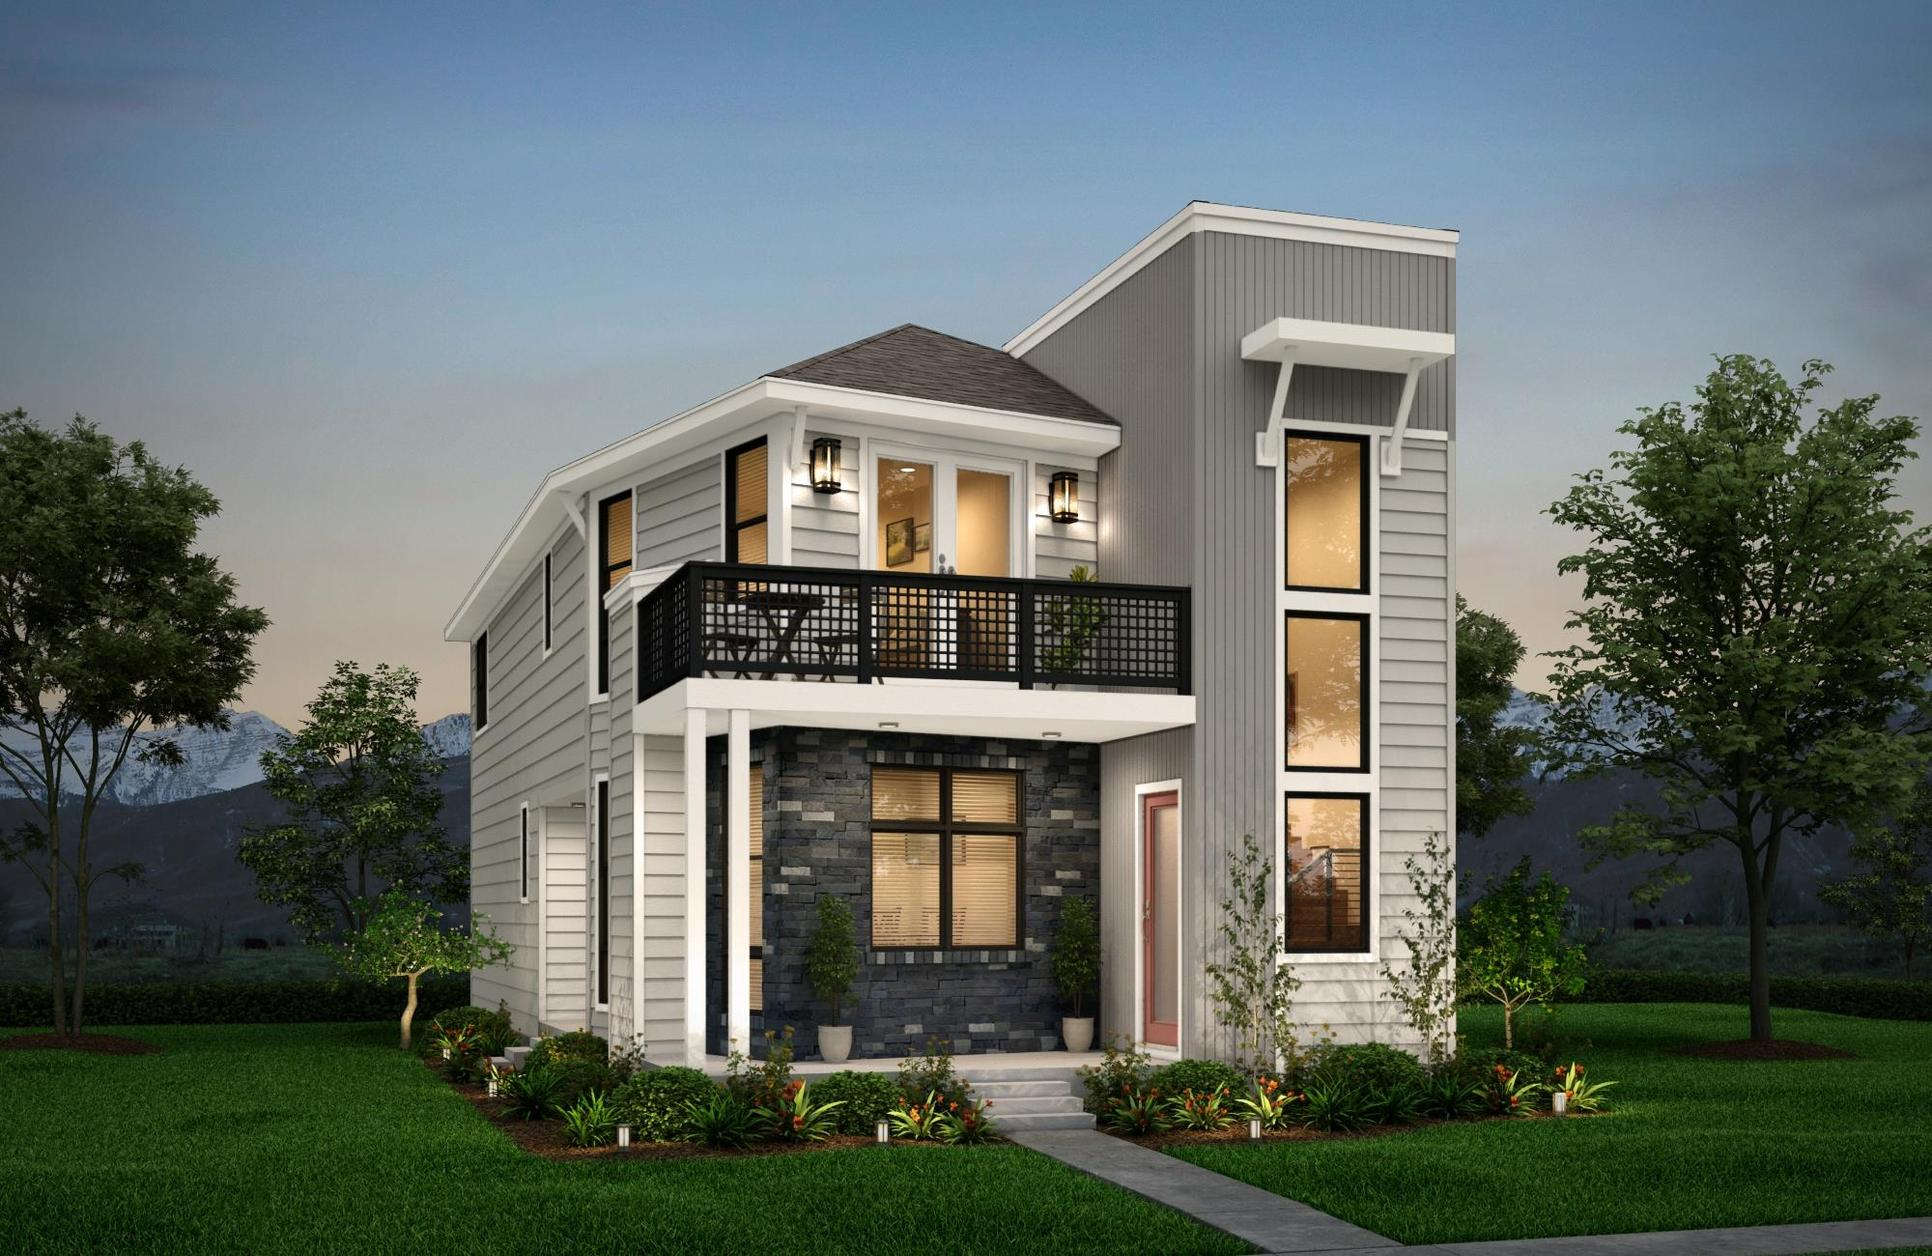 Ignite - Modern Foothills:Epic Homes' brand new designs, created specifically for Painted Prairie, offer a diverse range of options, including three-story options with Epic Elevated.